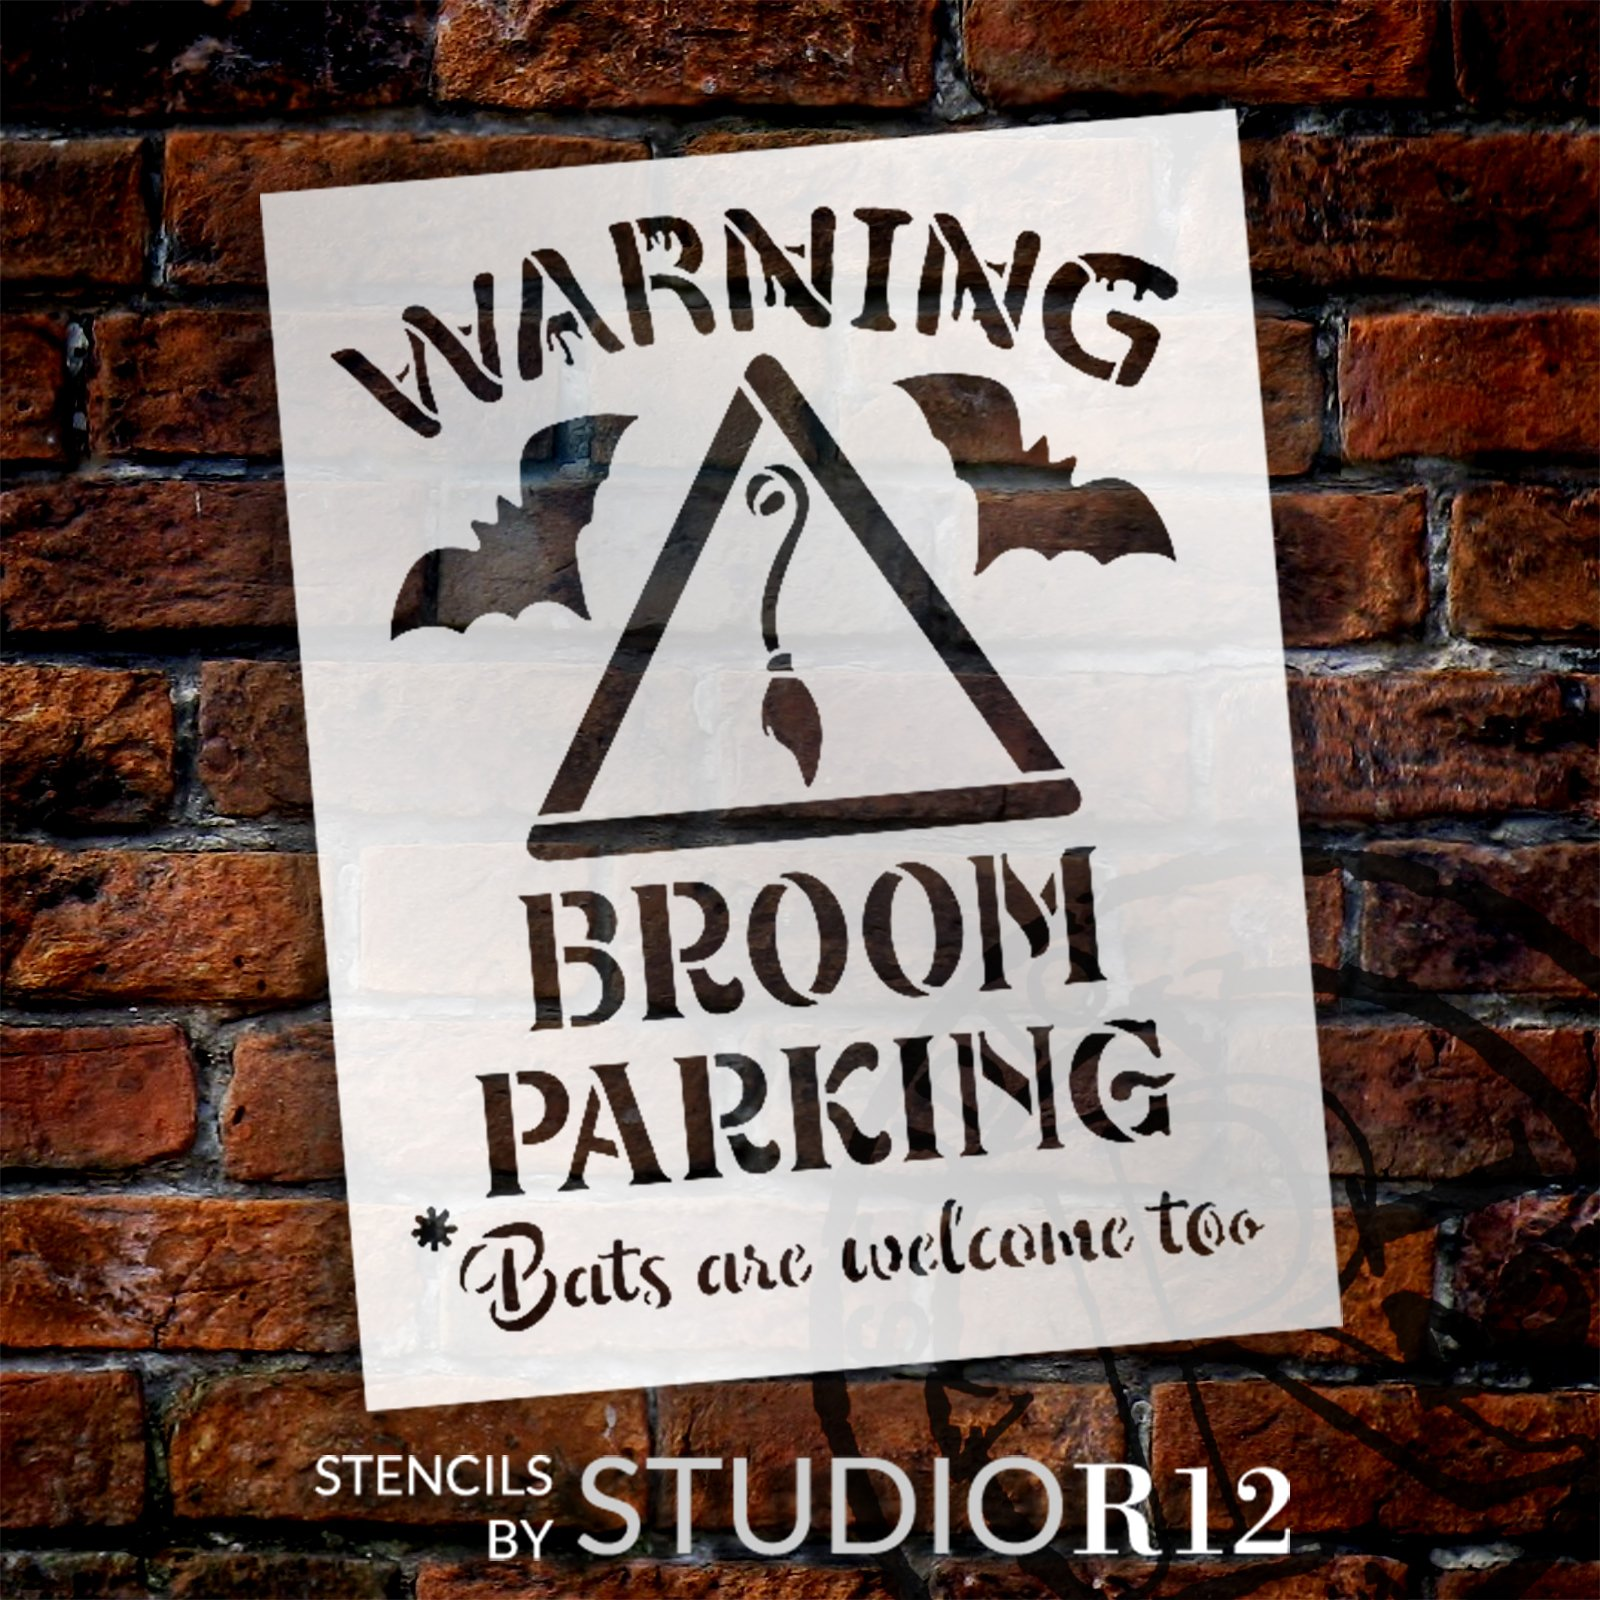 Warning Broom Parking Stencil by StudioR12 | DIY Fall Autumn Halloween Home Decor | Craft & Paint Wood Sign | Reusable Mylar Template | Select Size